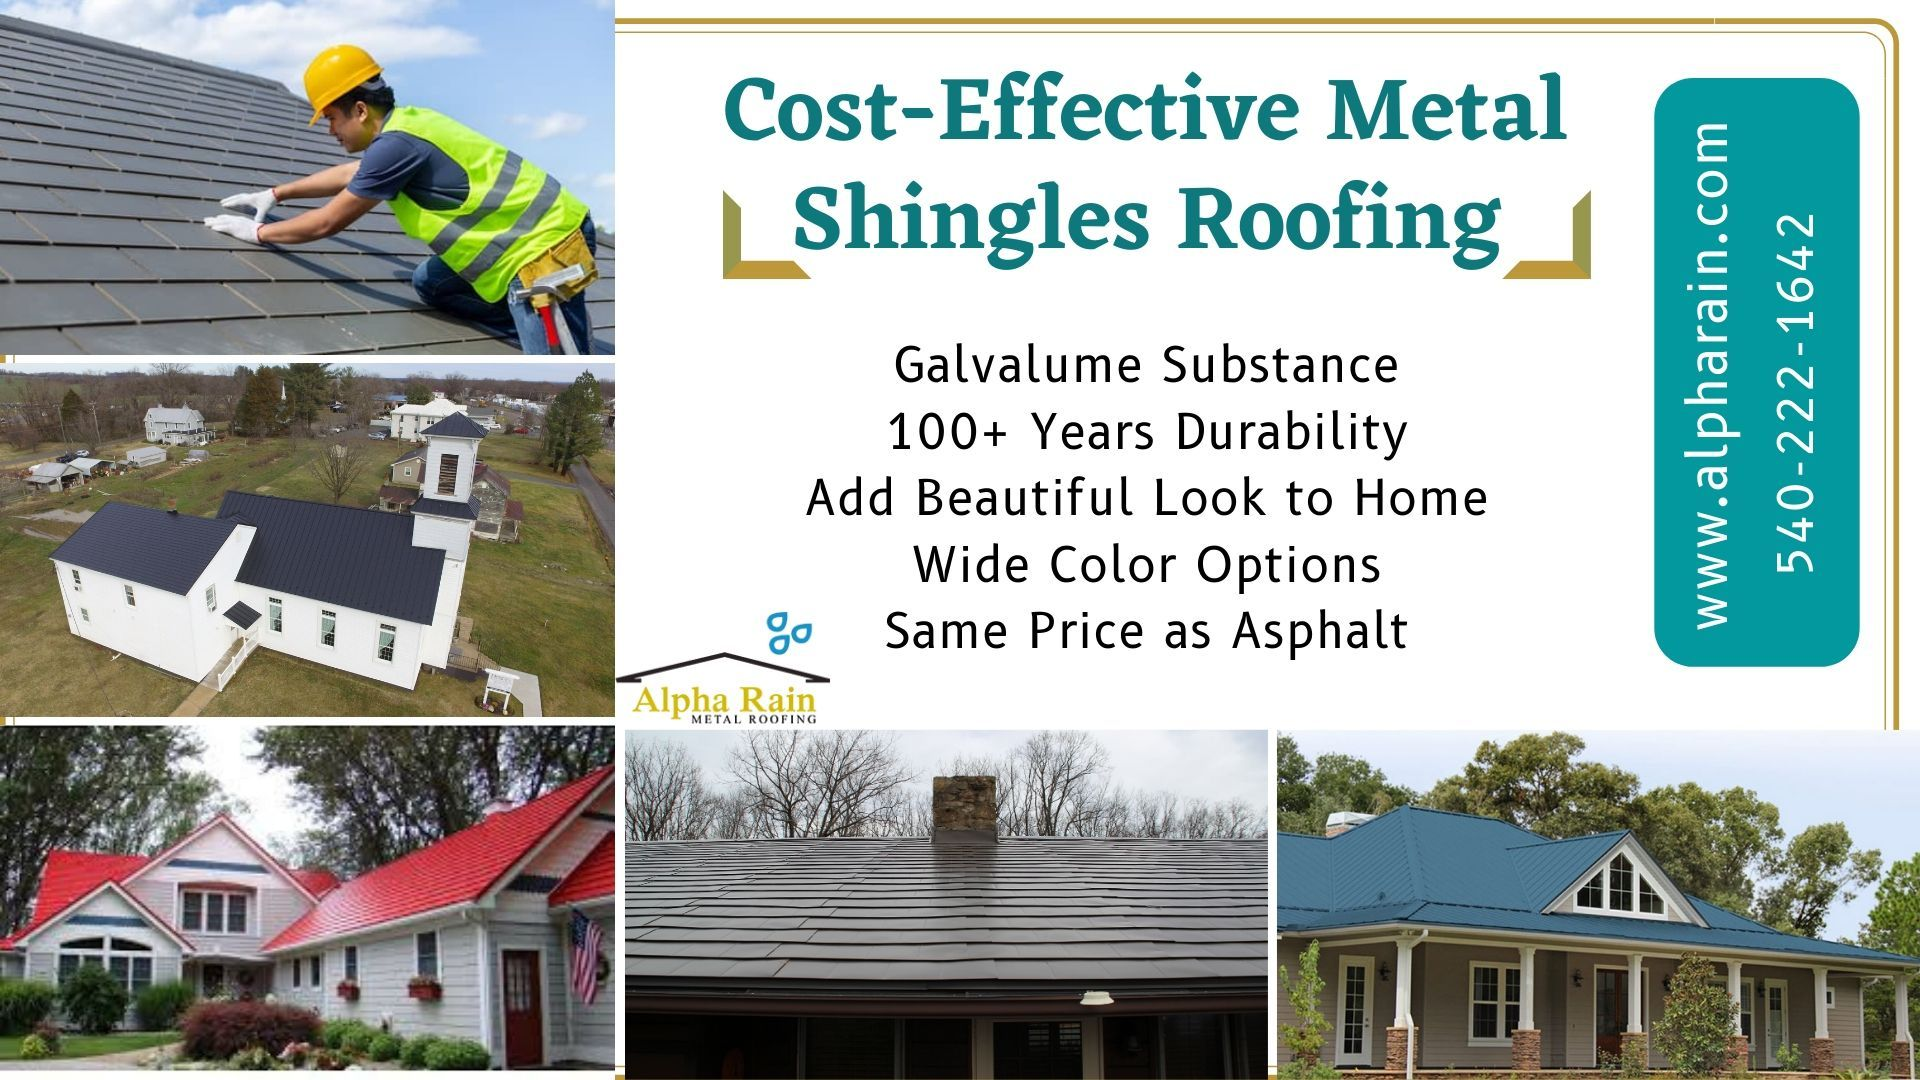 Permanent Metal Roof Shingles Same Cost As Asphalt In 2020 Metal Shingle Roof Roof Shingles Shingling